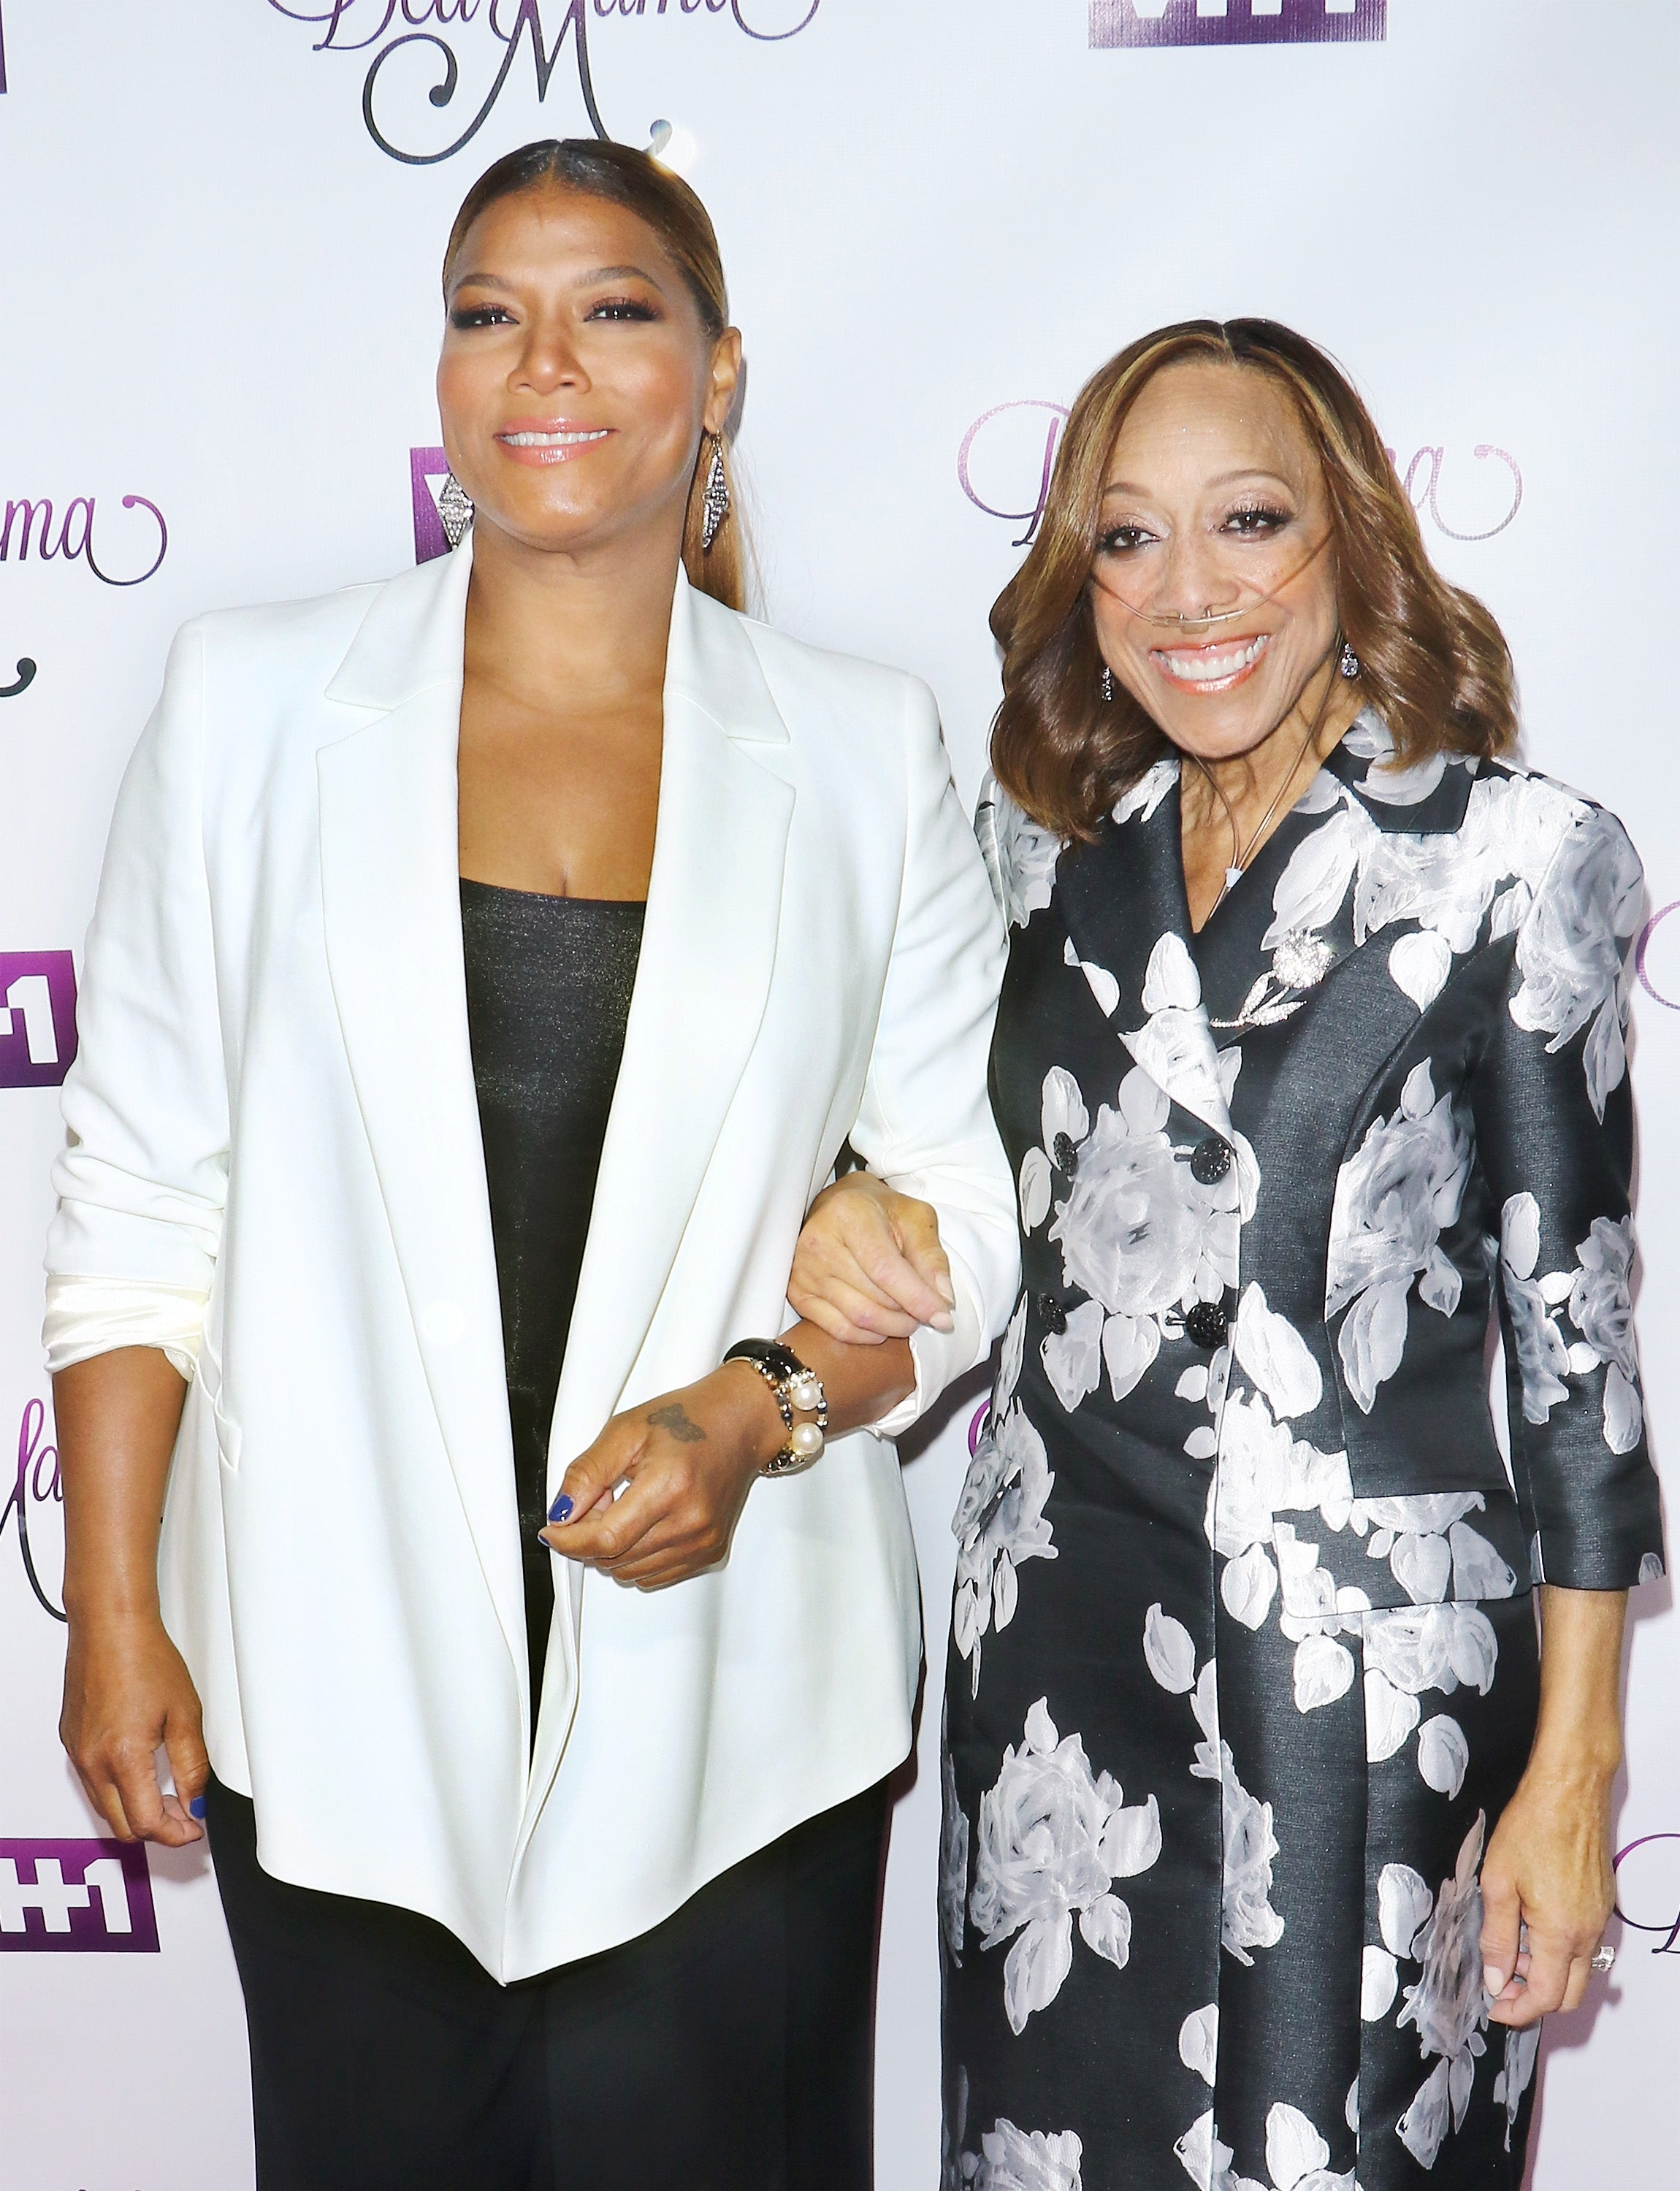 Queen Latifah's Mother Rita Owens Has Died After Her Struggle With Heart Disease: 'Her Battle Is Over Now'